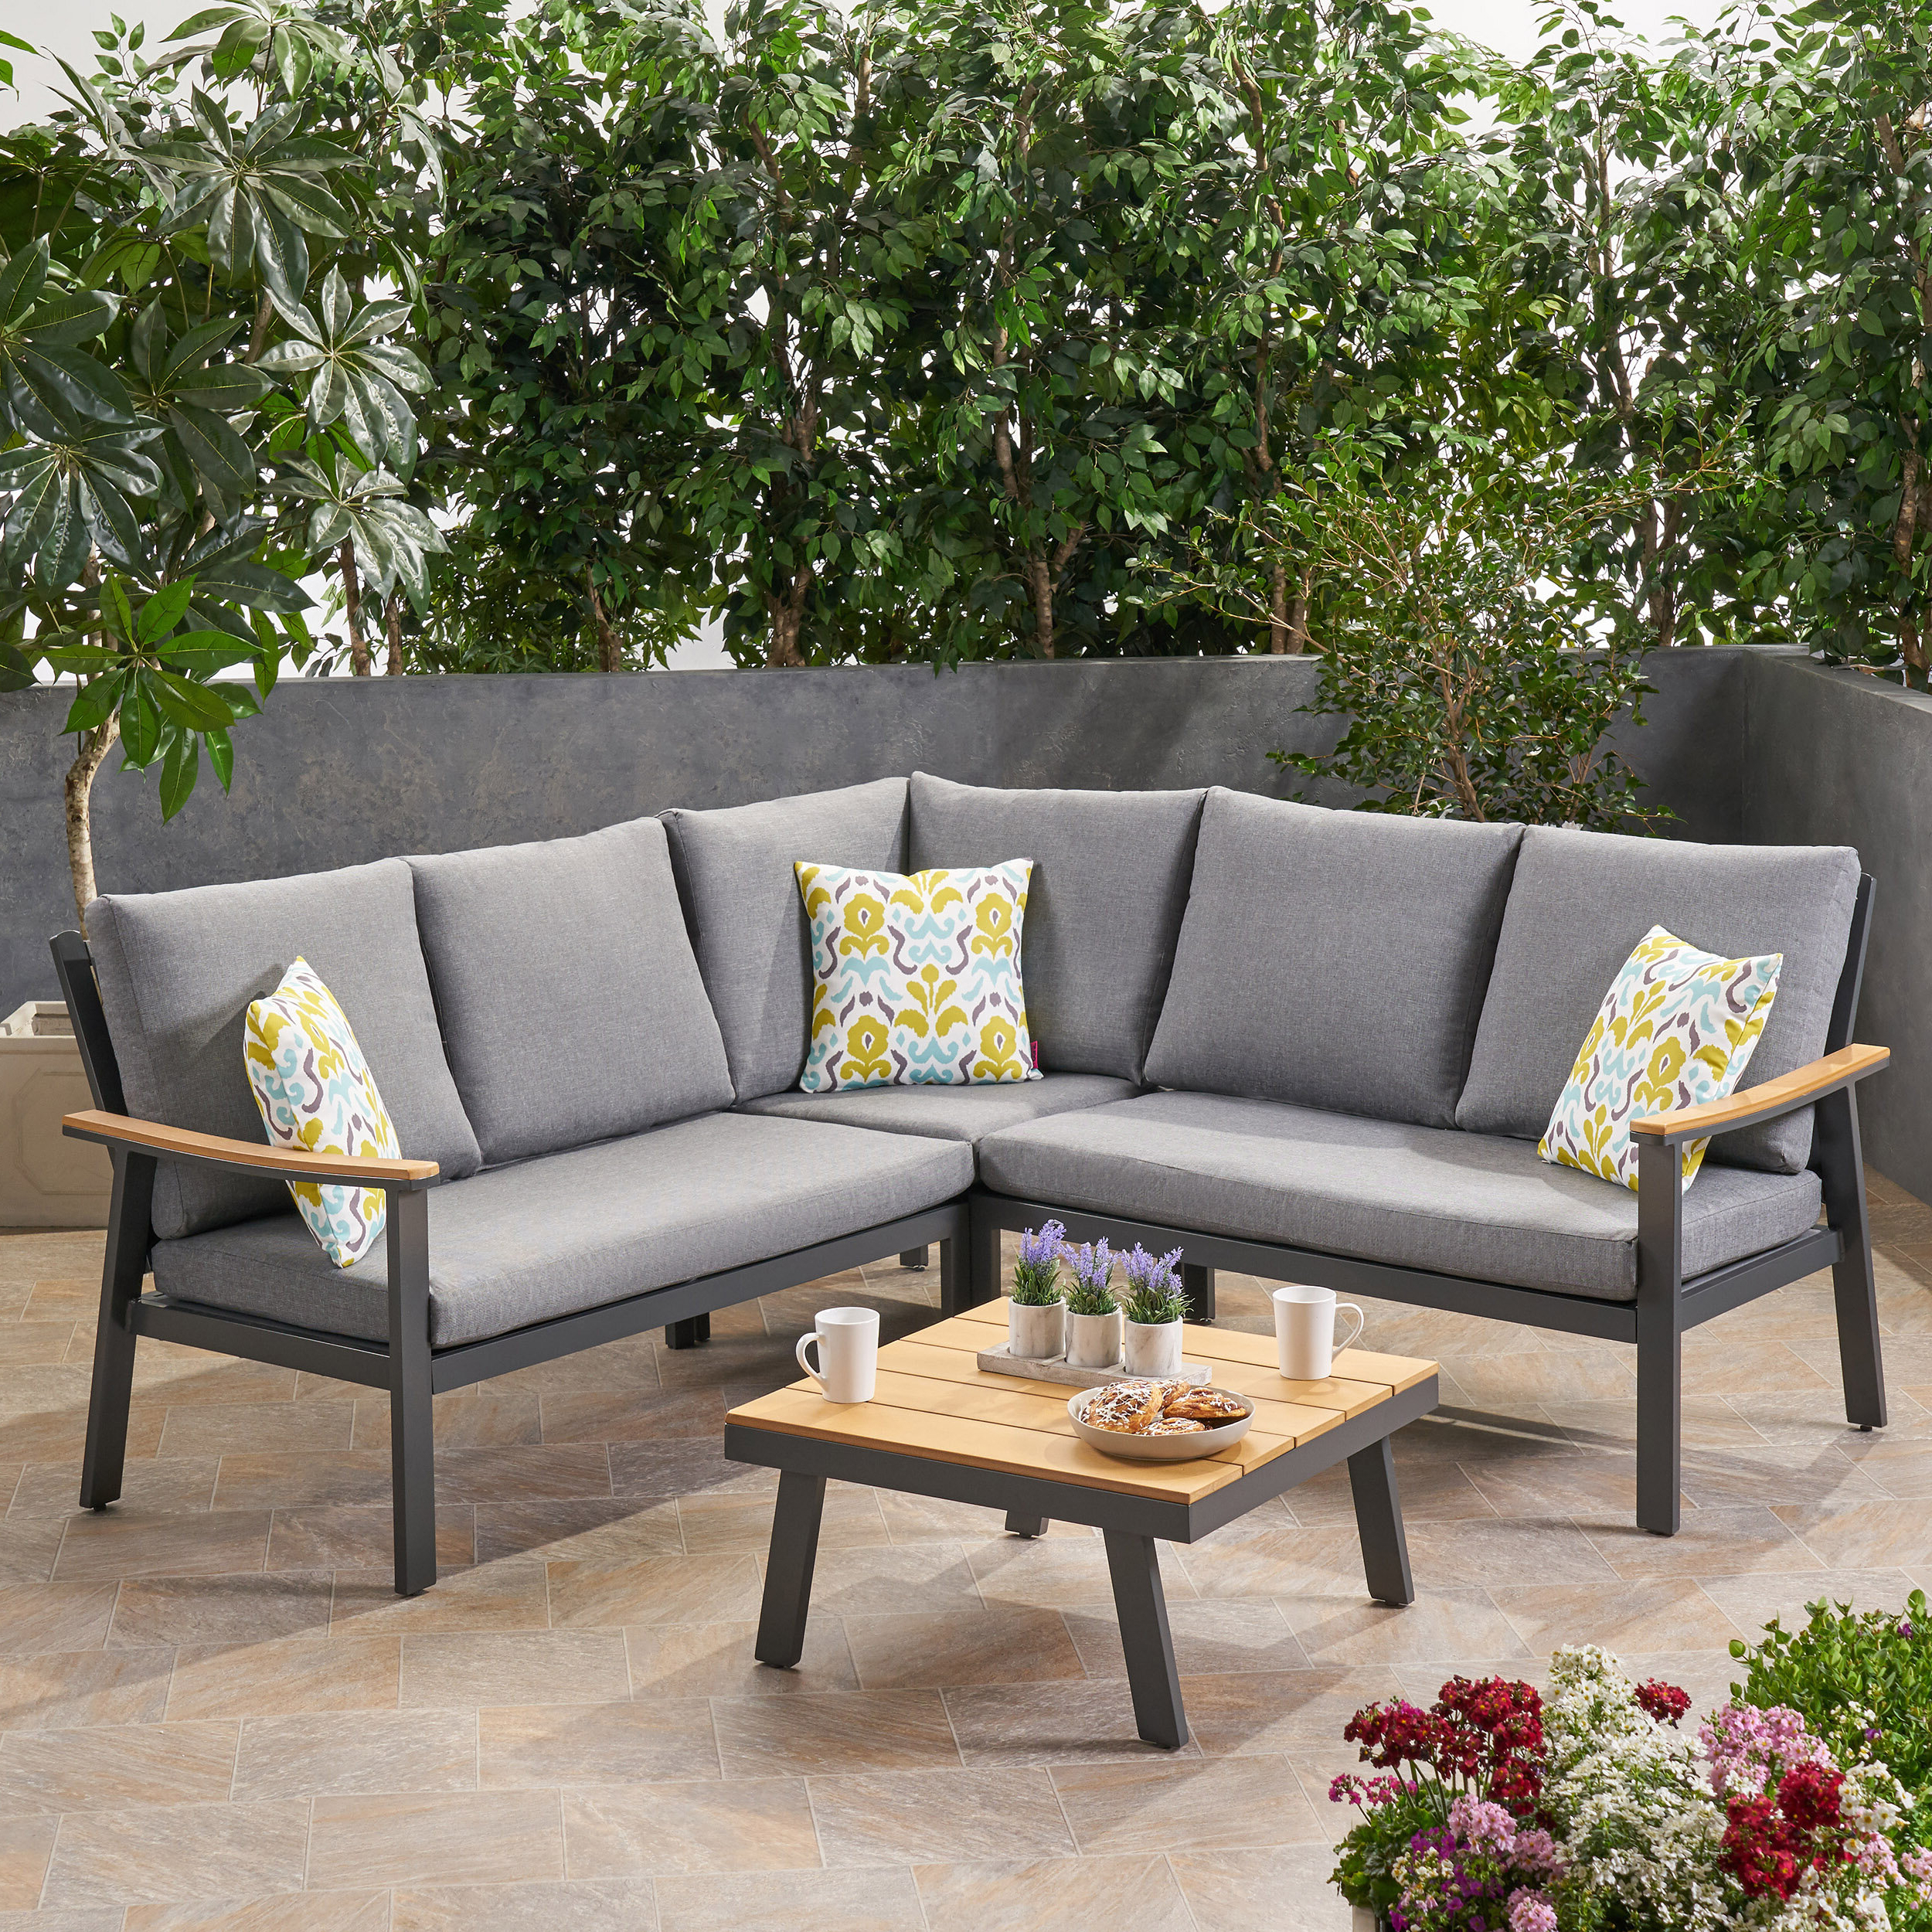 Most Recent Seaham Patio Sectionals With Cushions With Regard To Arocho Outdoor 4 Piece Sectional Seating Group With Cushions (View 4 of 20)